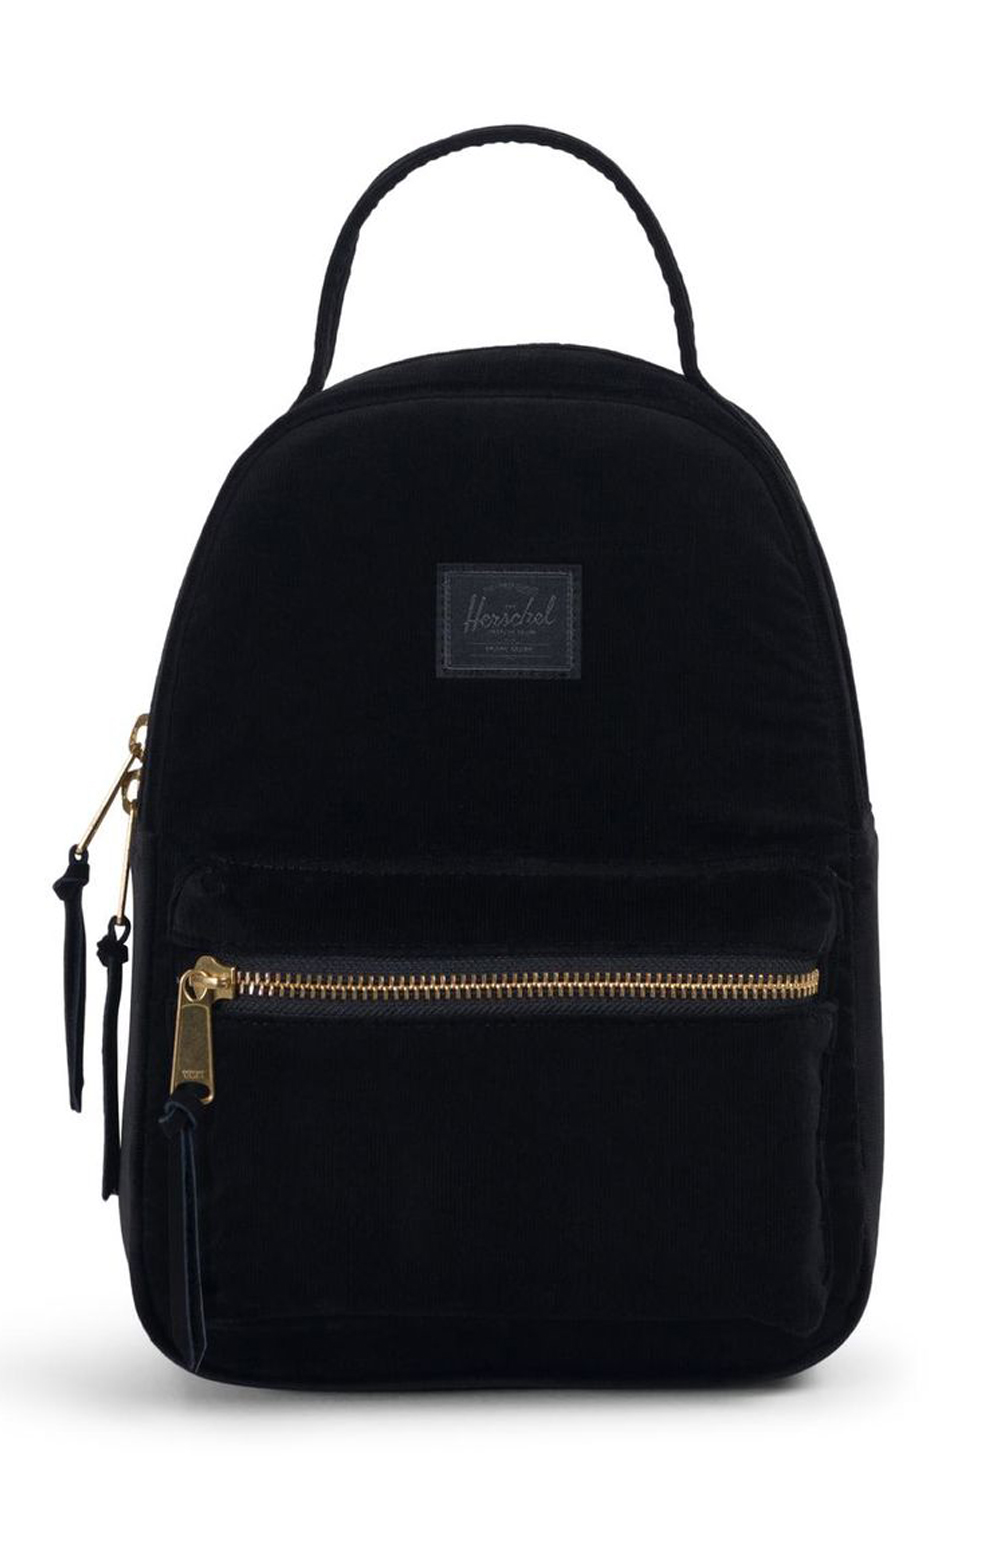 4ce1152774f Nova Mini Corduroy Backpack - Black